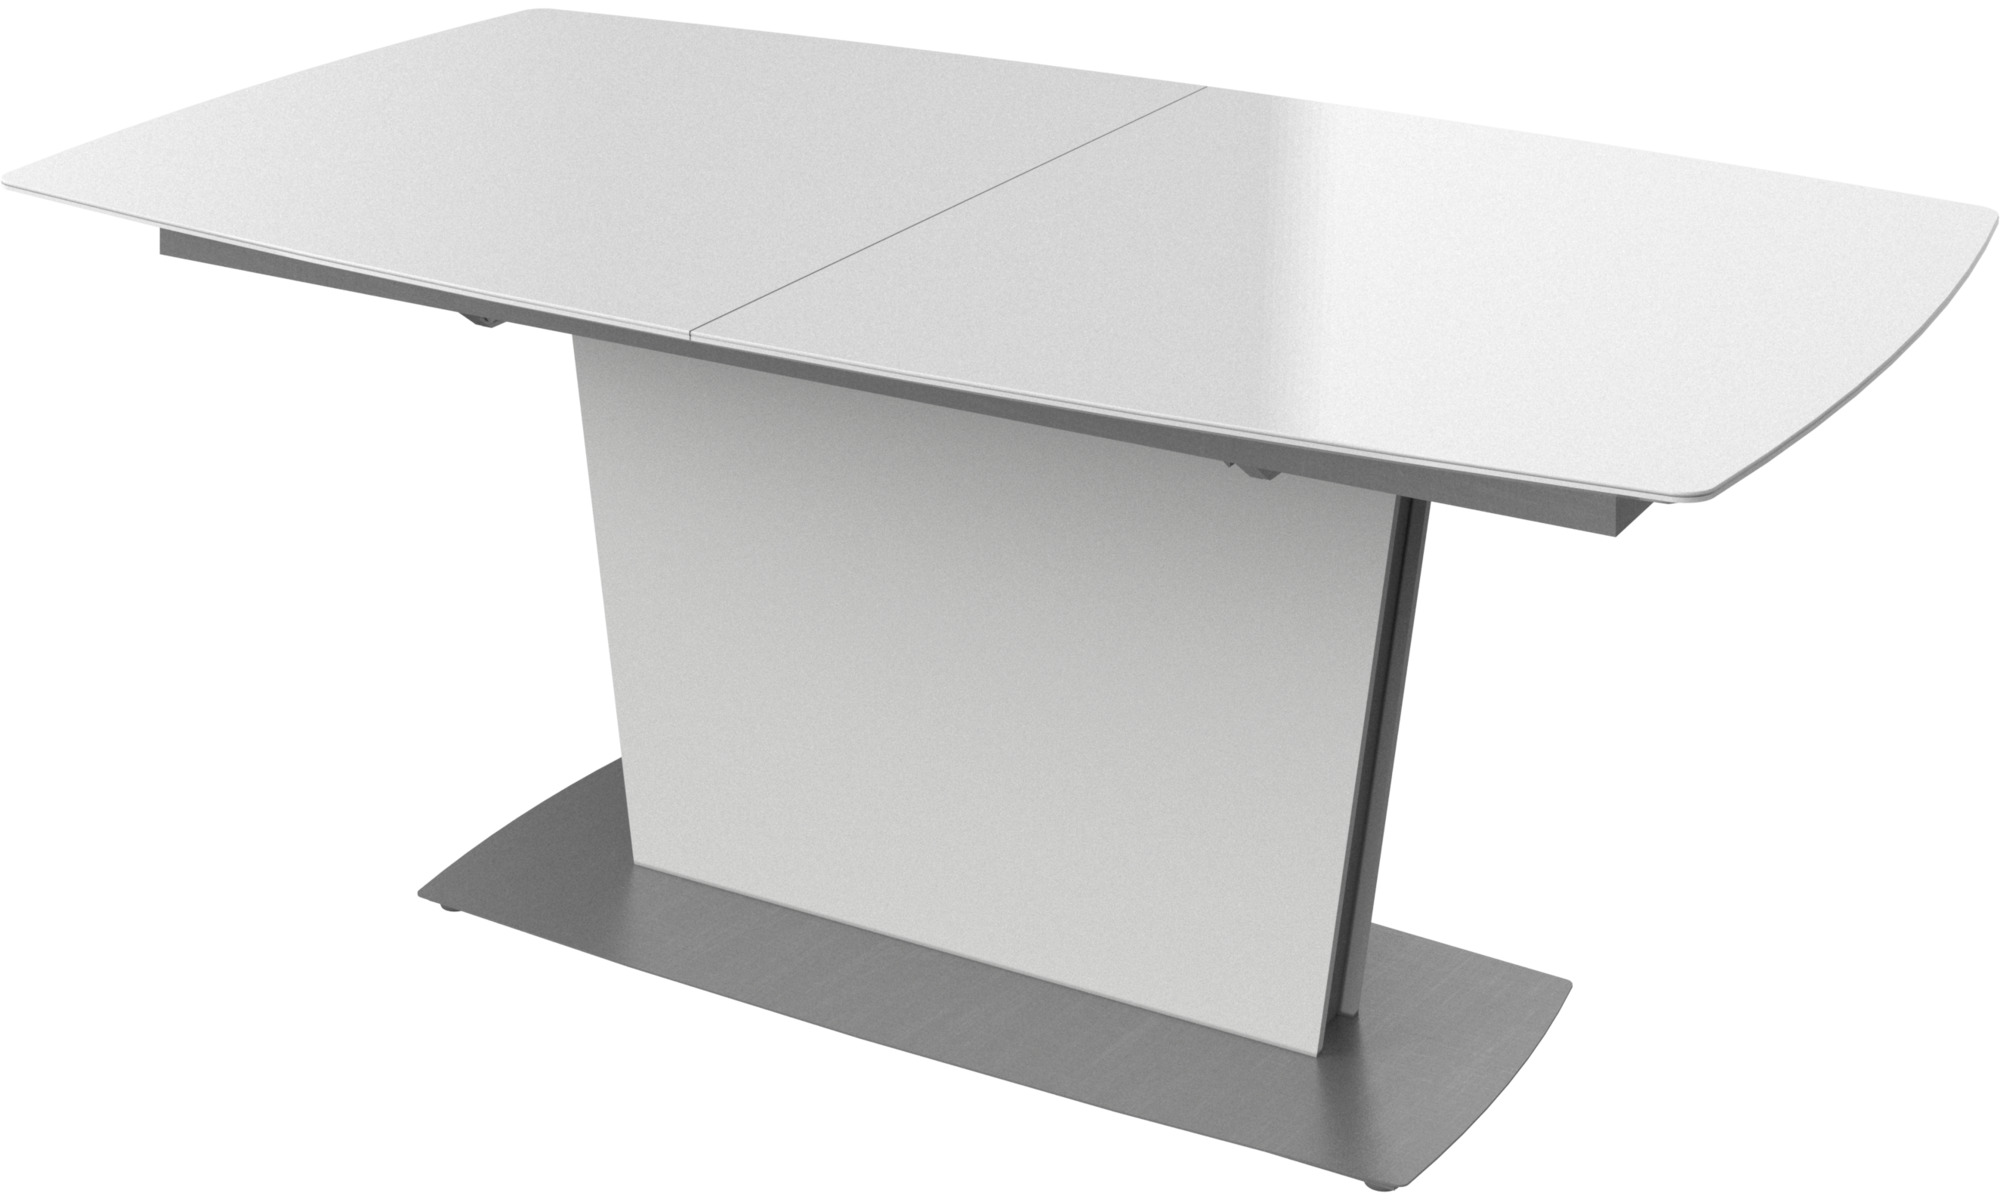 Extendable dining table table milano avec allonge s boconcept - Table bo concept occasion ...